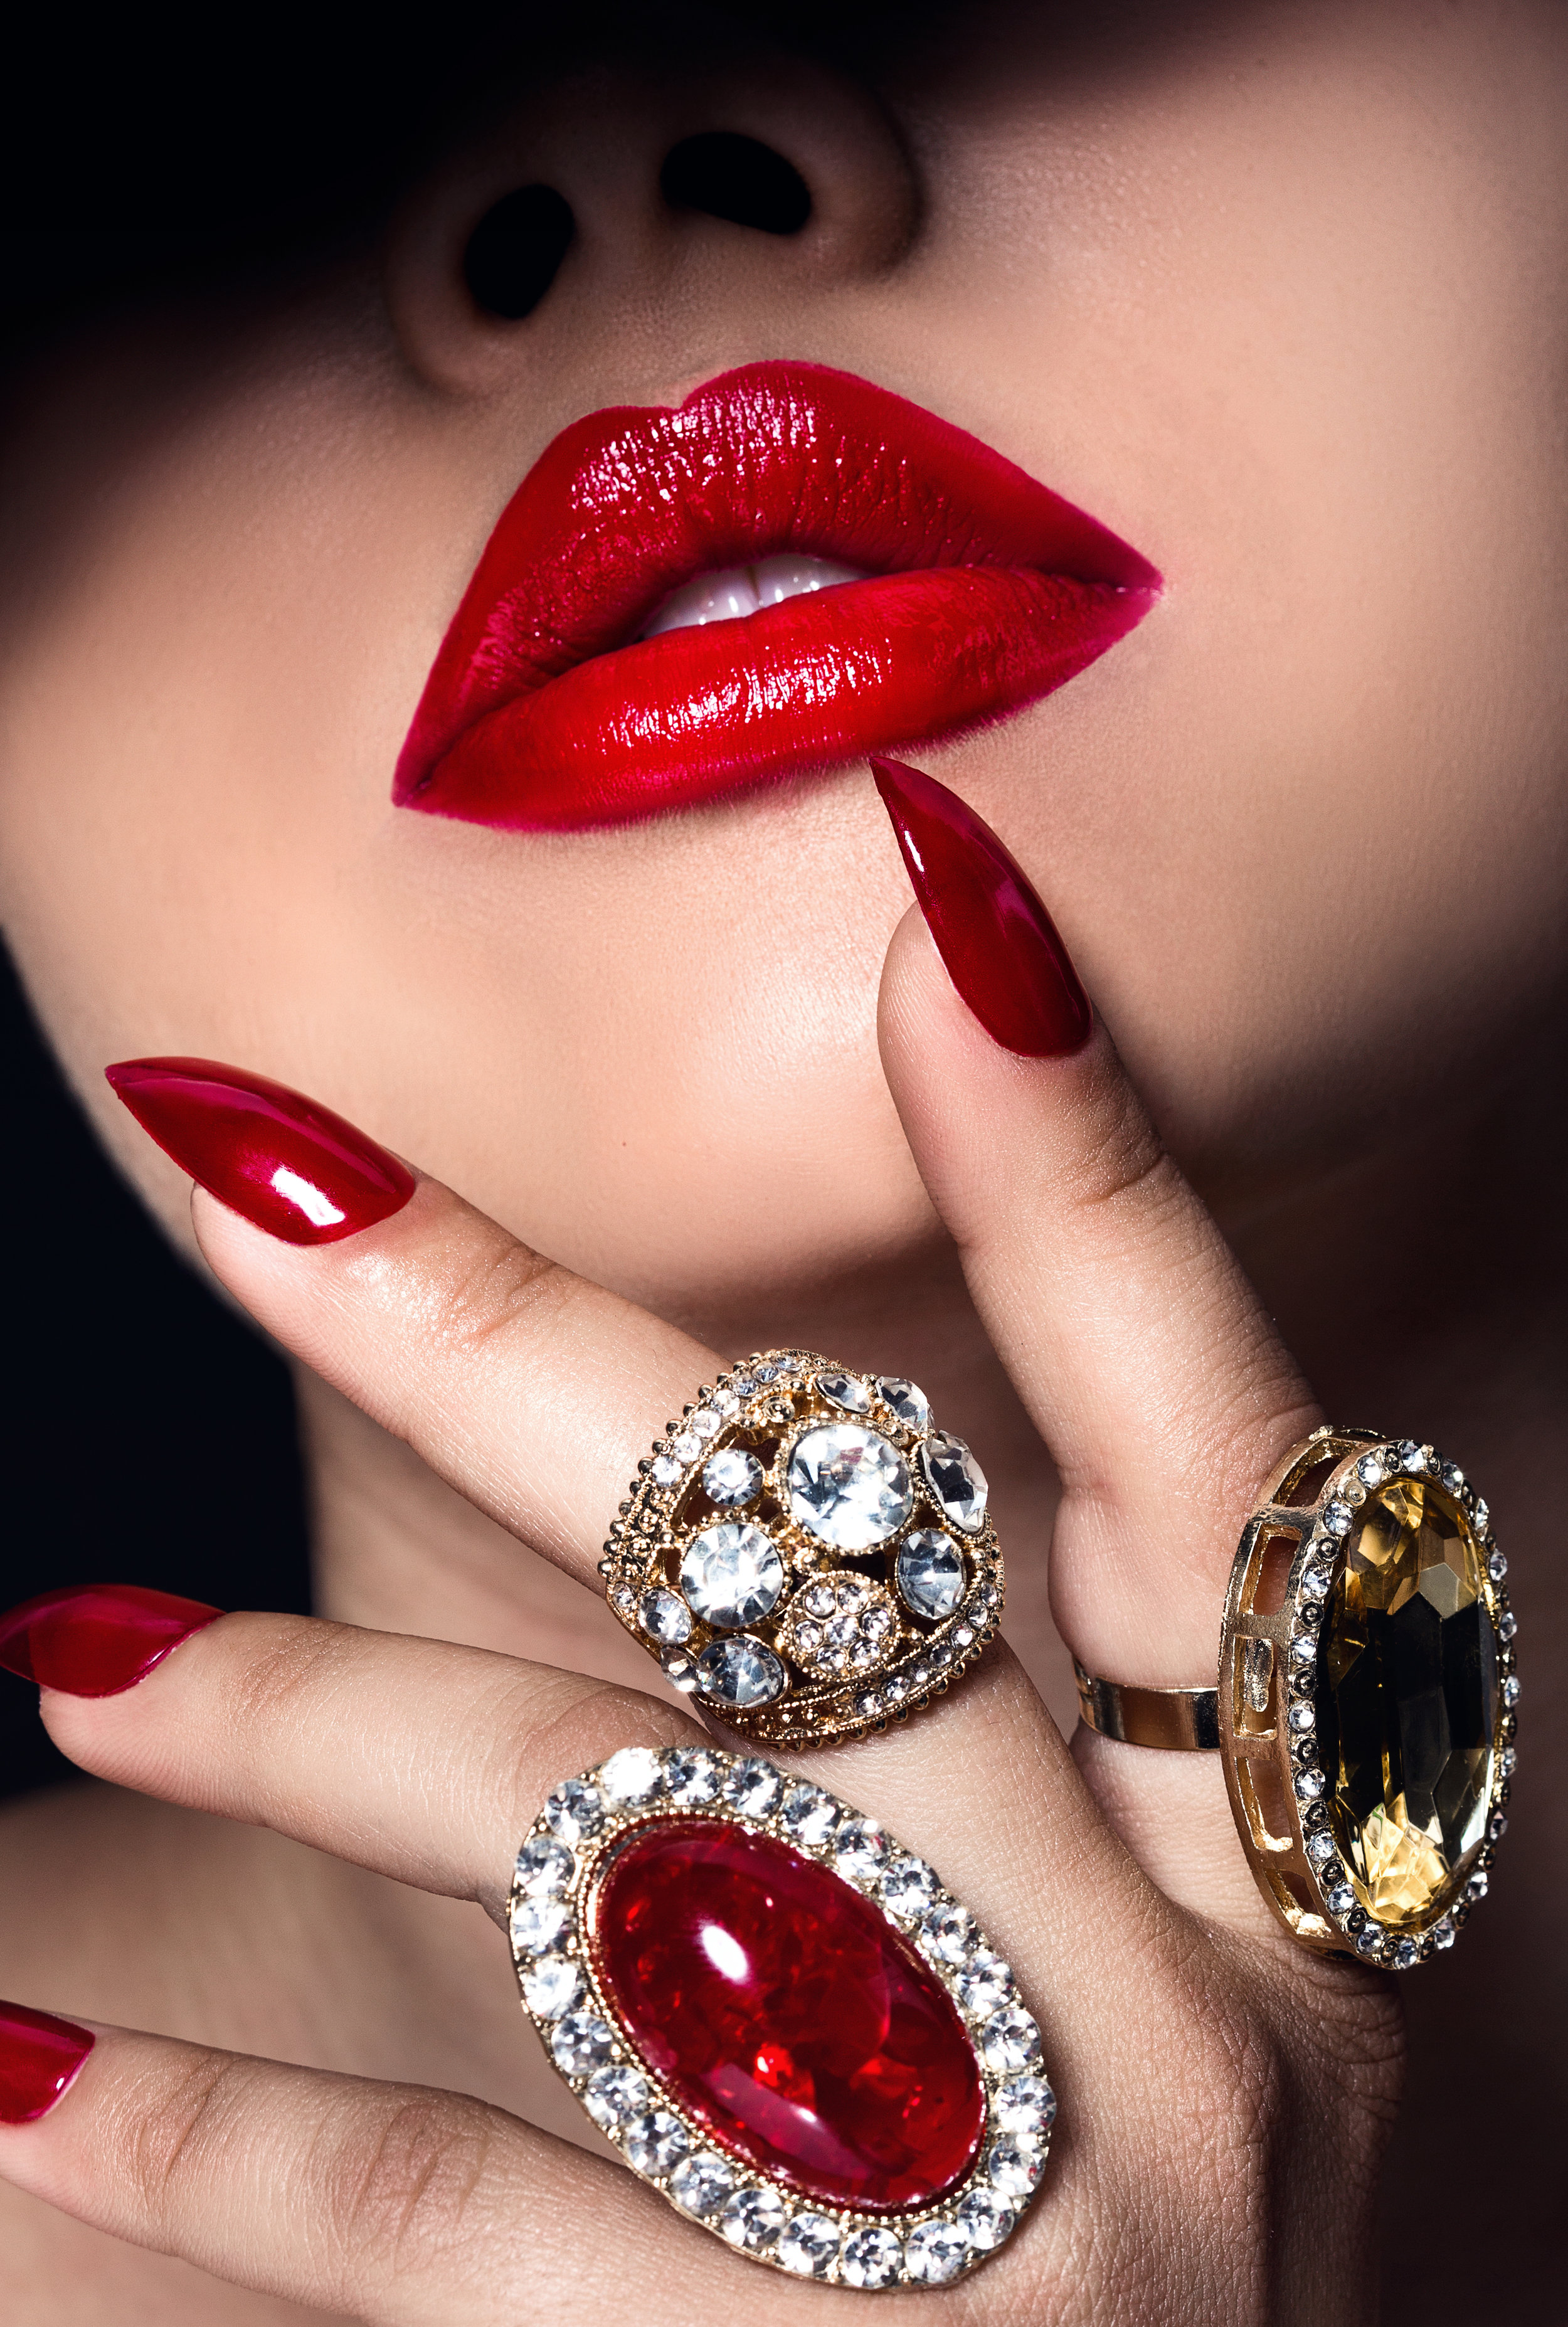 Who doesn't love a Ruby Red lip look?